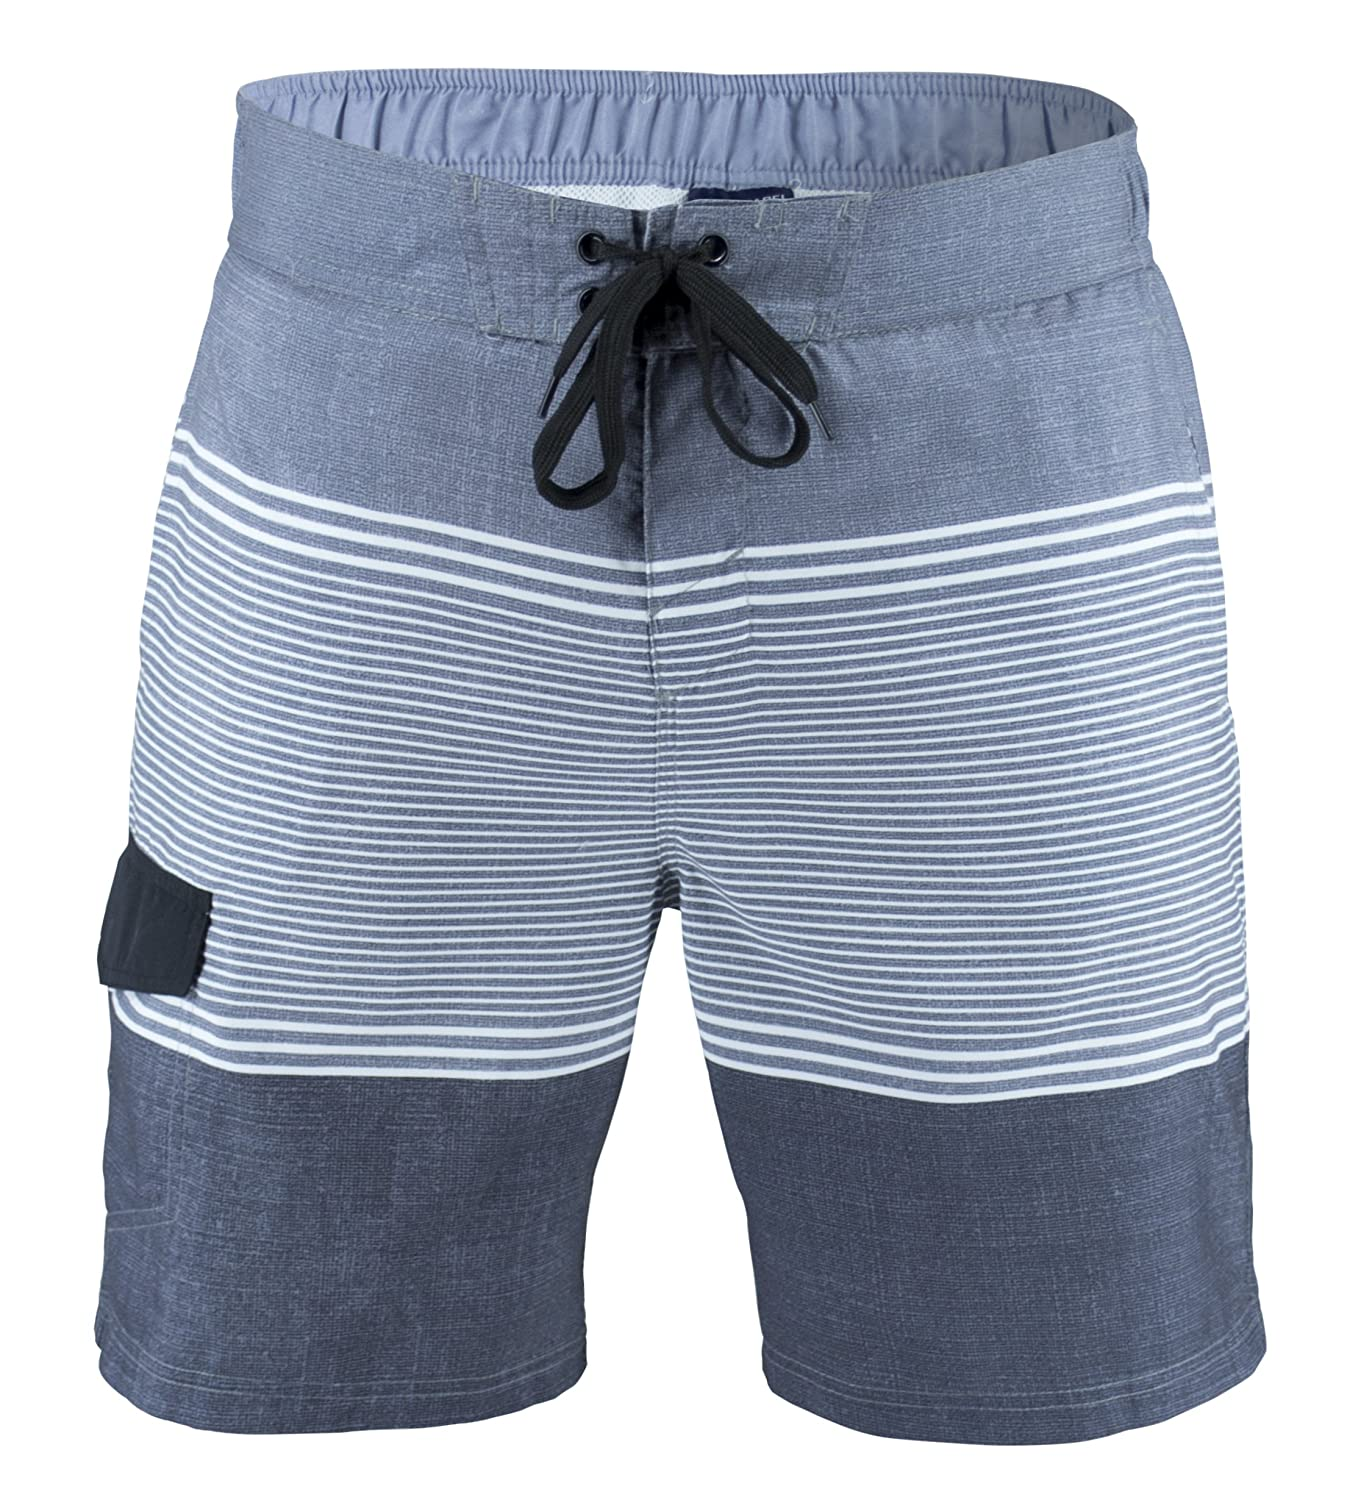 d8e350ee0e Matereek Men's Shorts Stripe Effect Swimwear Swim Trunks Aqua | Amazon.com